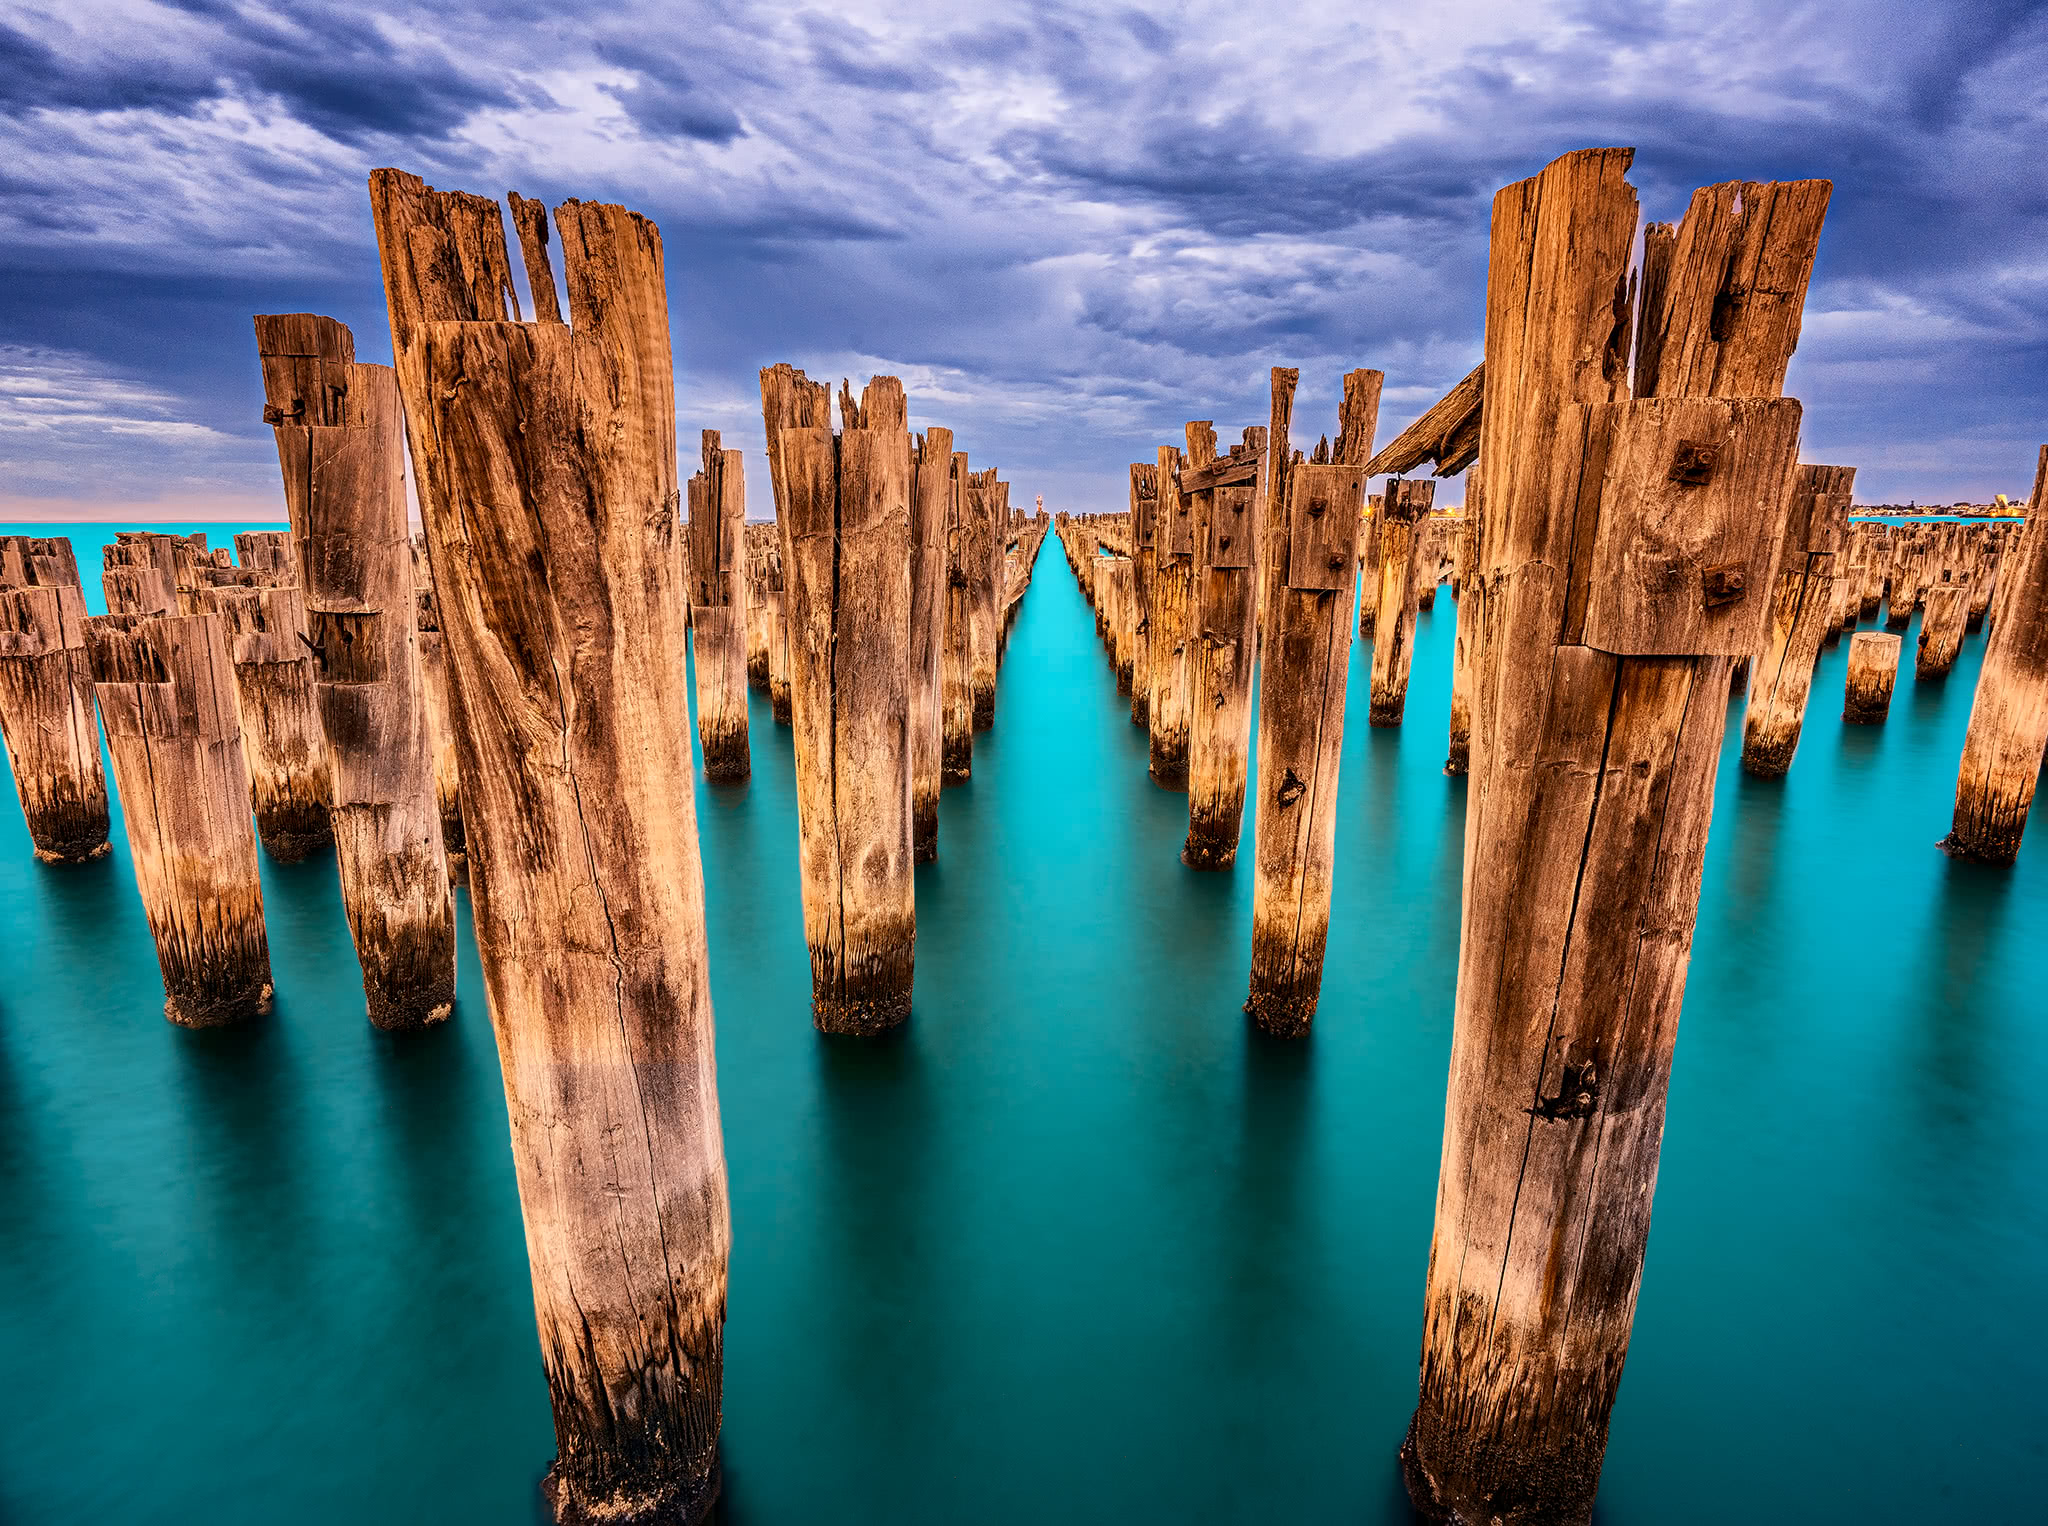 Princes Pier in Port Melbourne, Victoria, Australia